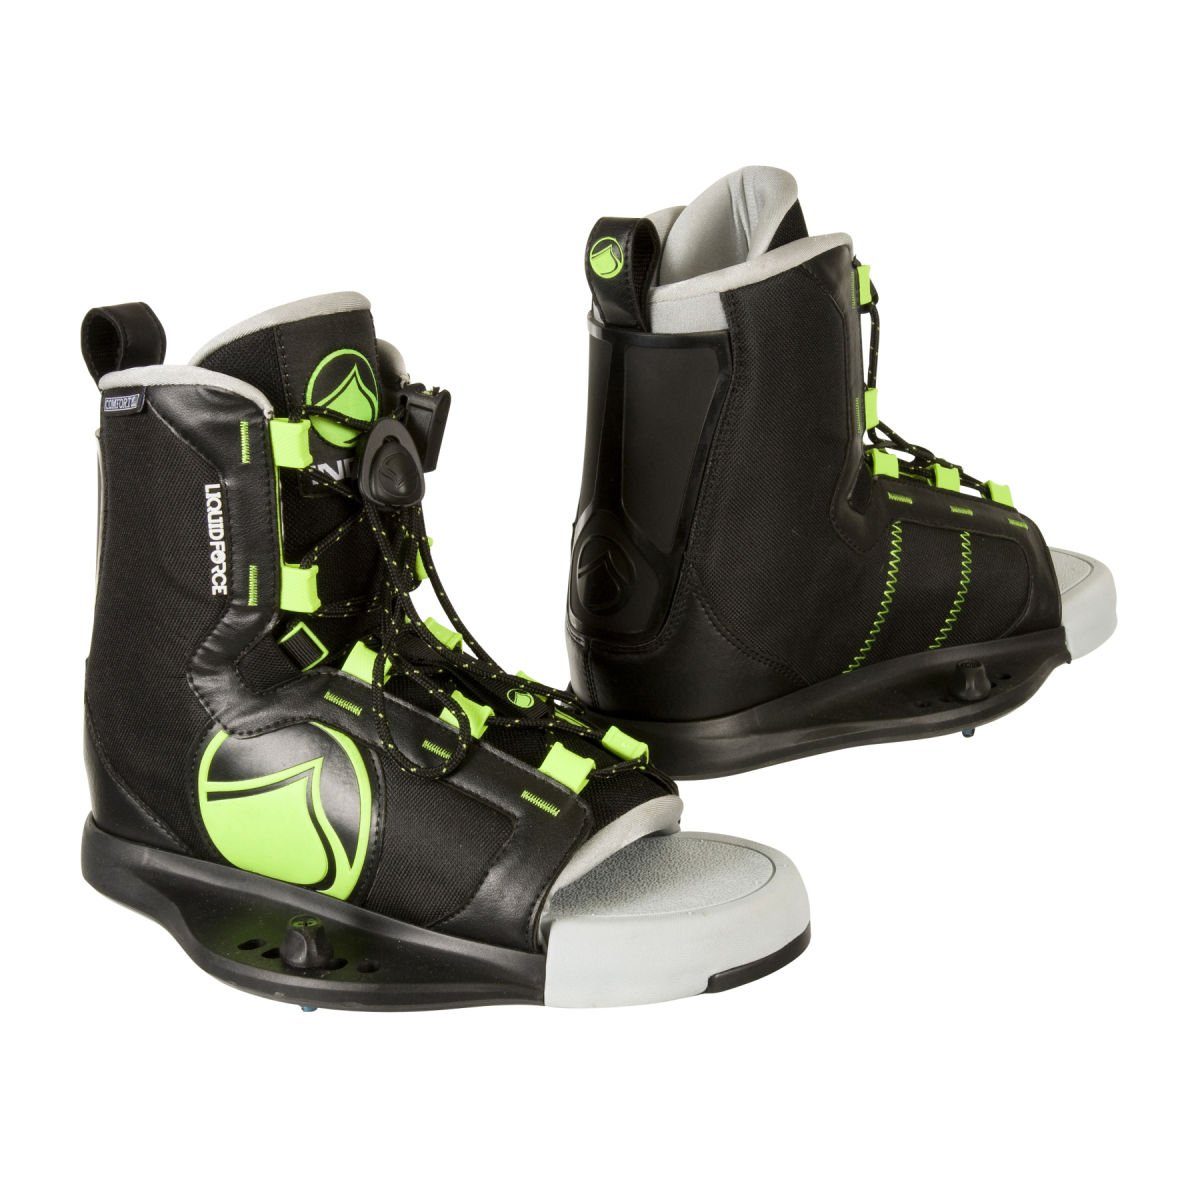 Bindings Size 12 Bindings Men 39 s Size 8 12